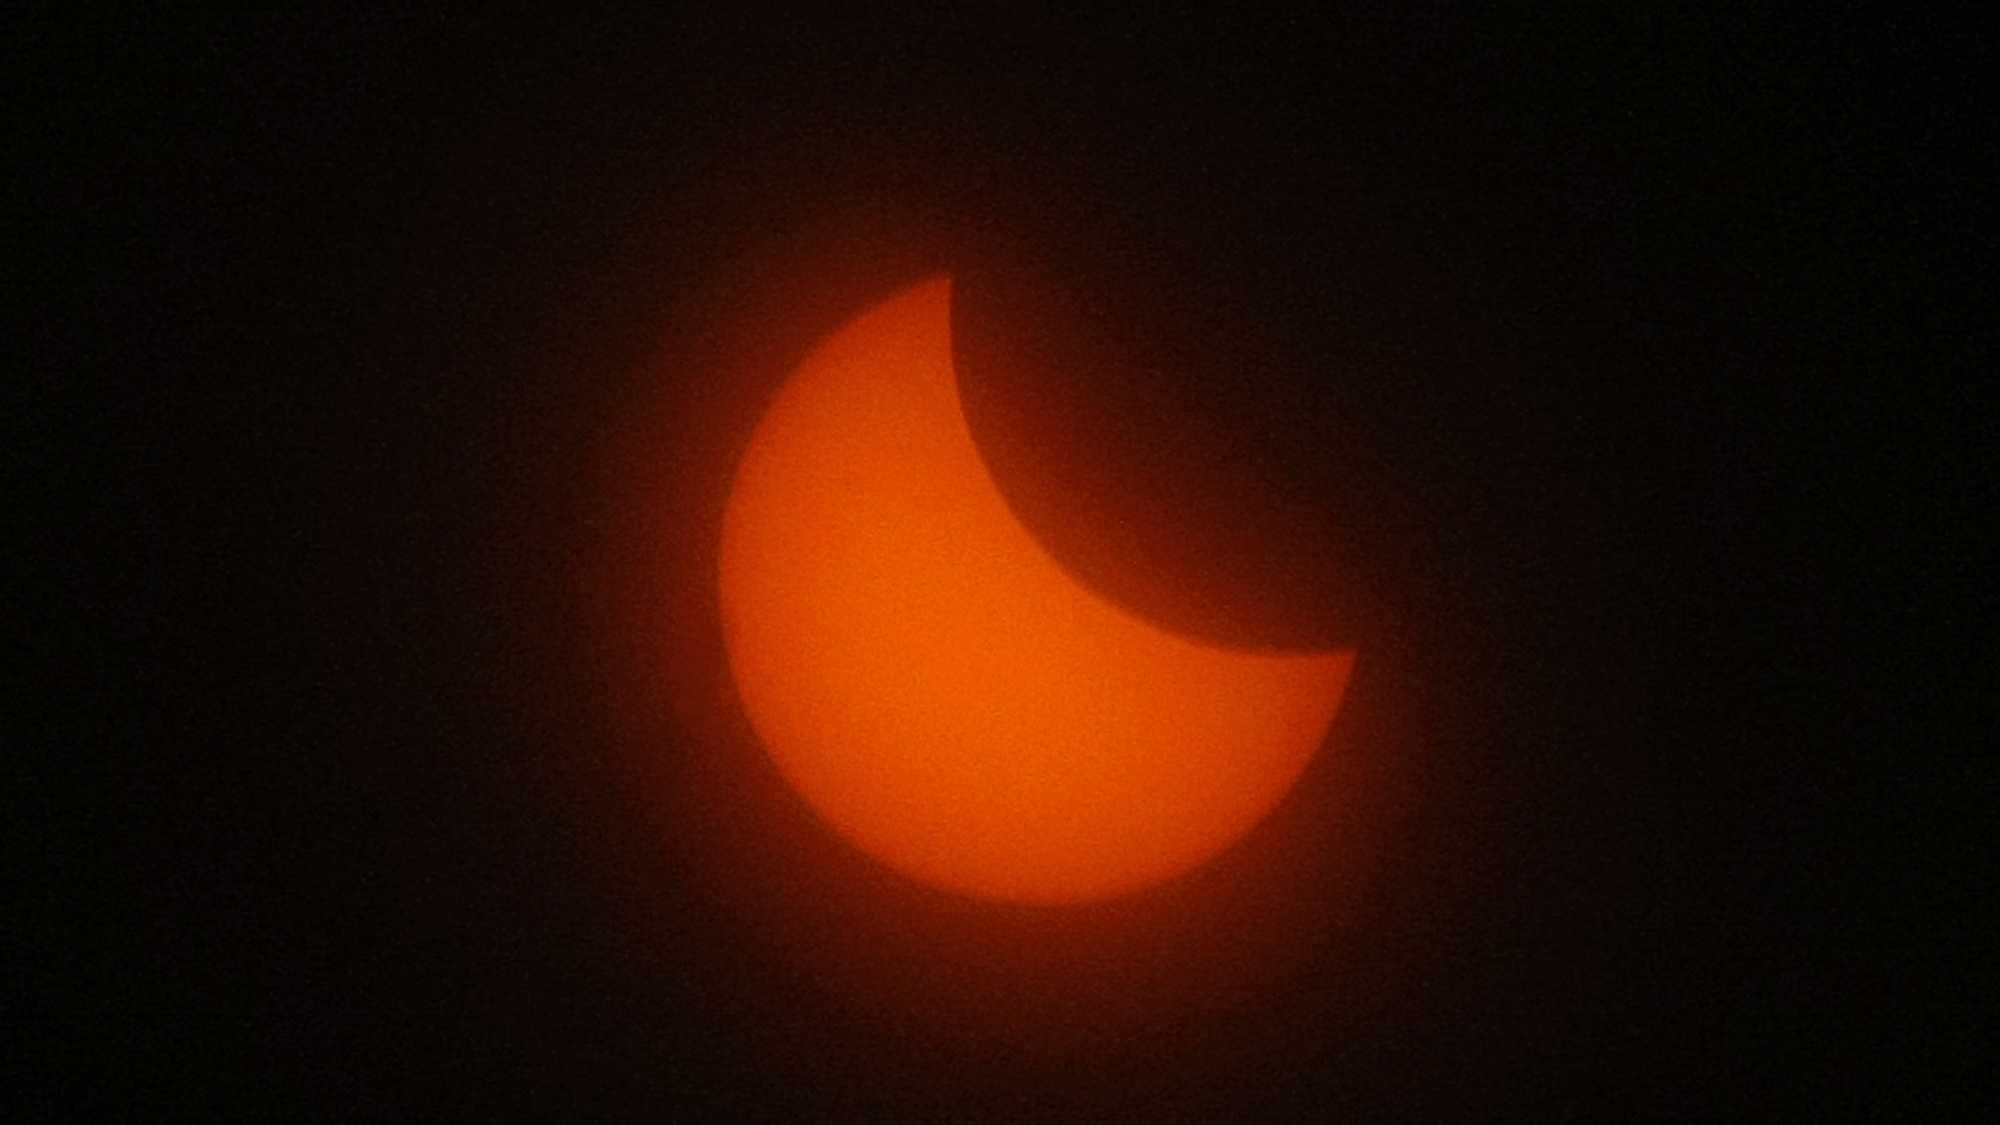 The sun is seen during a solar eclipse in Marseille, southern France, Friday, March 20, 2015. An eclipse is darkening parts of Europe on Friday in a rare solar event that won't be repeated for more than a decade.